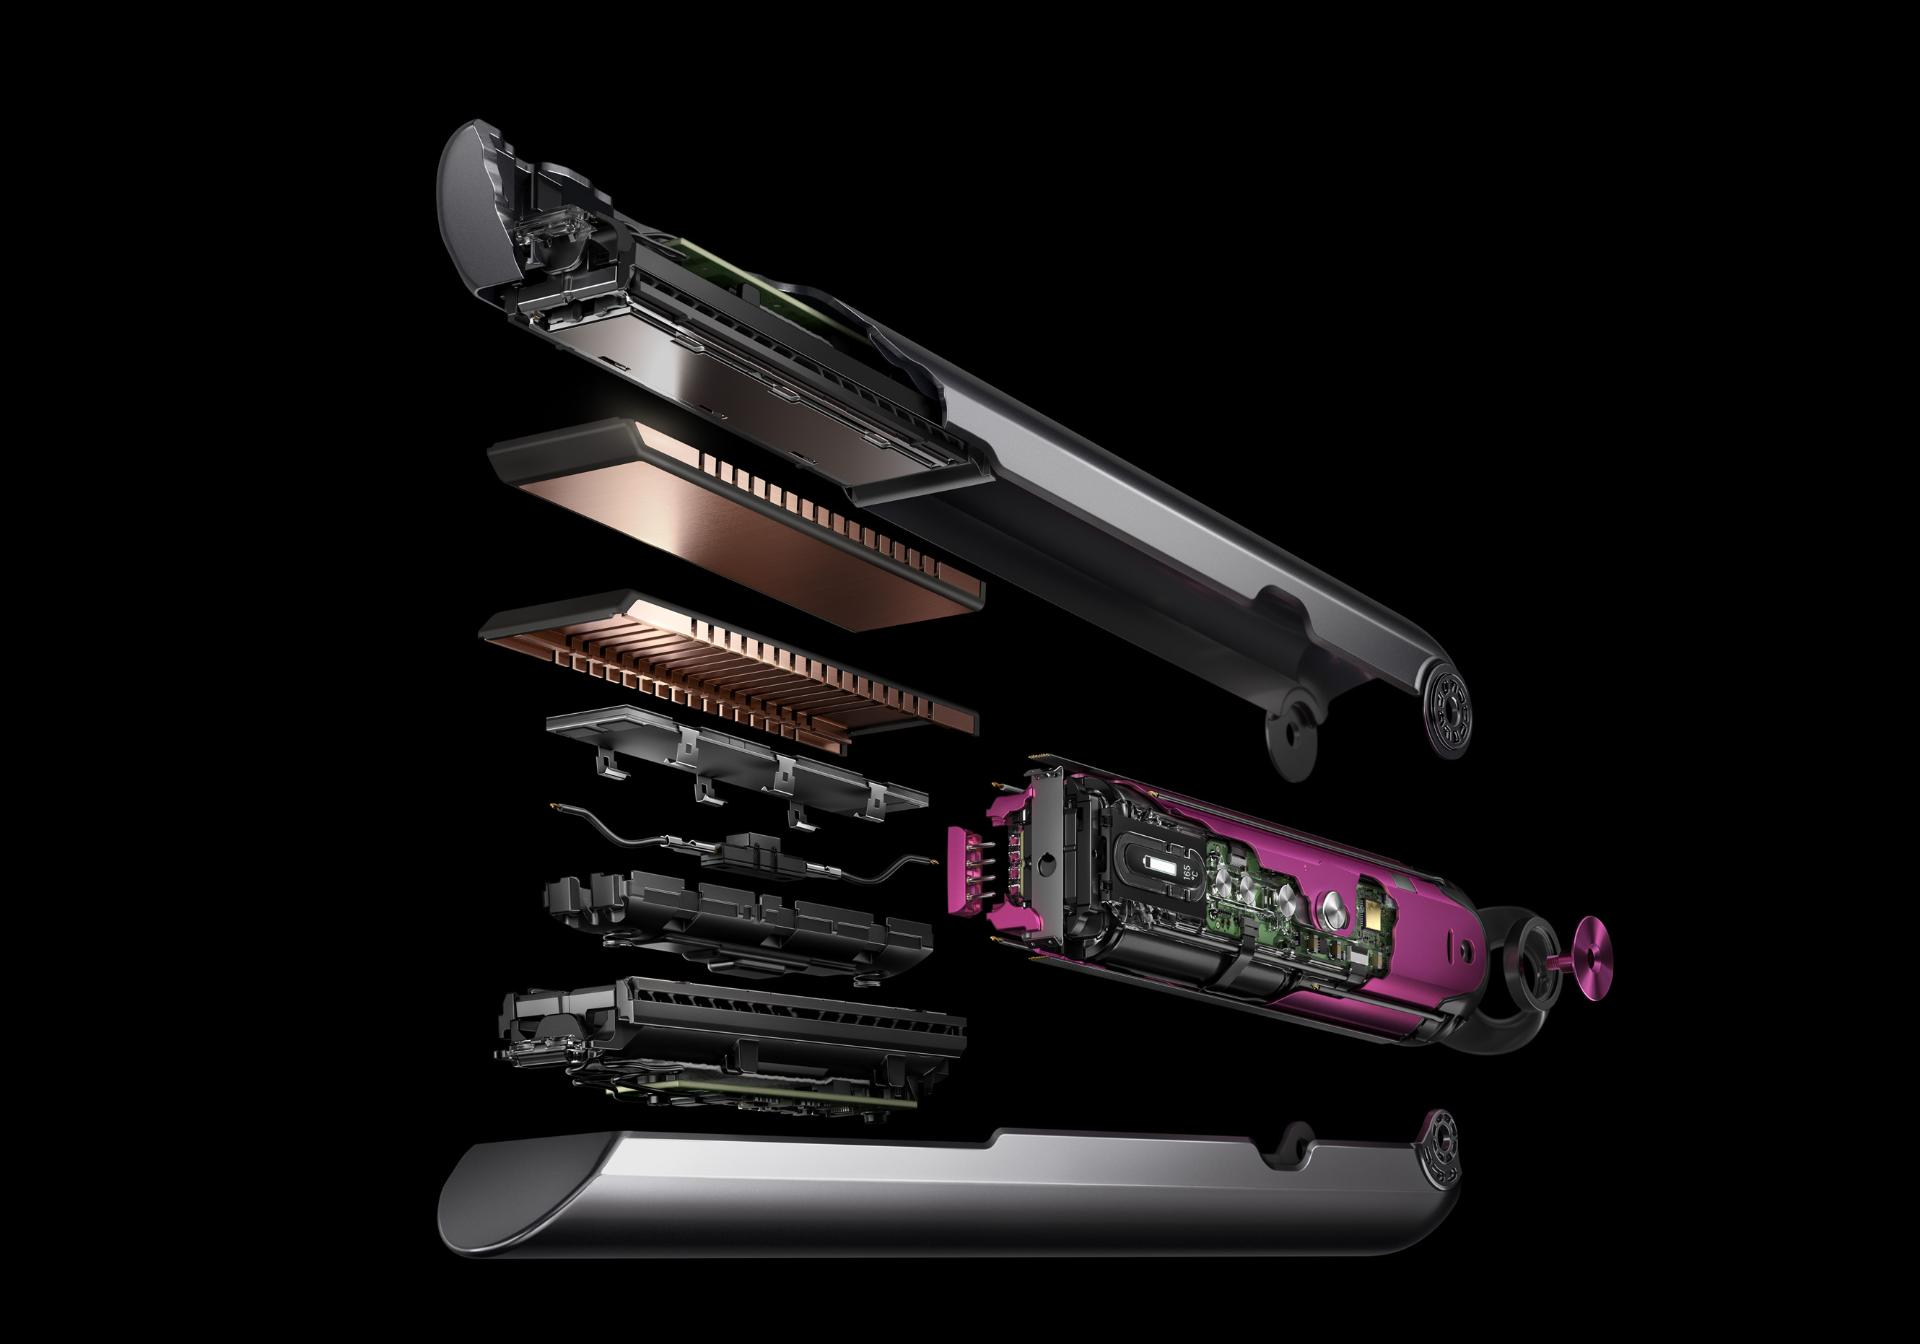 Image of the Dyson Corrale? straightener opening up with all of its technology inside